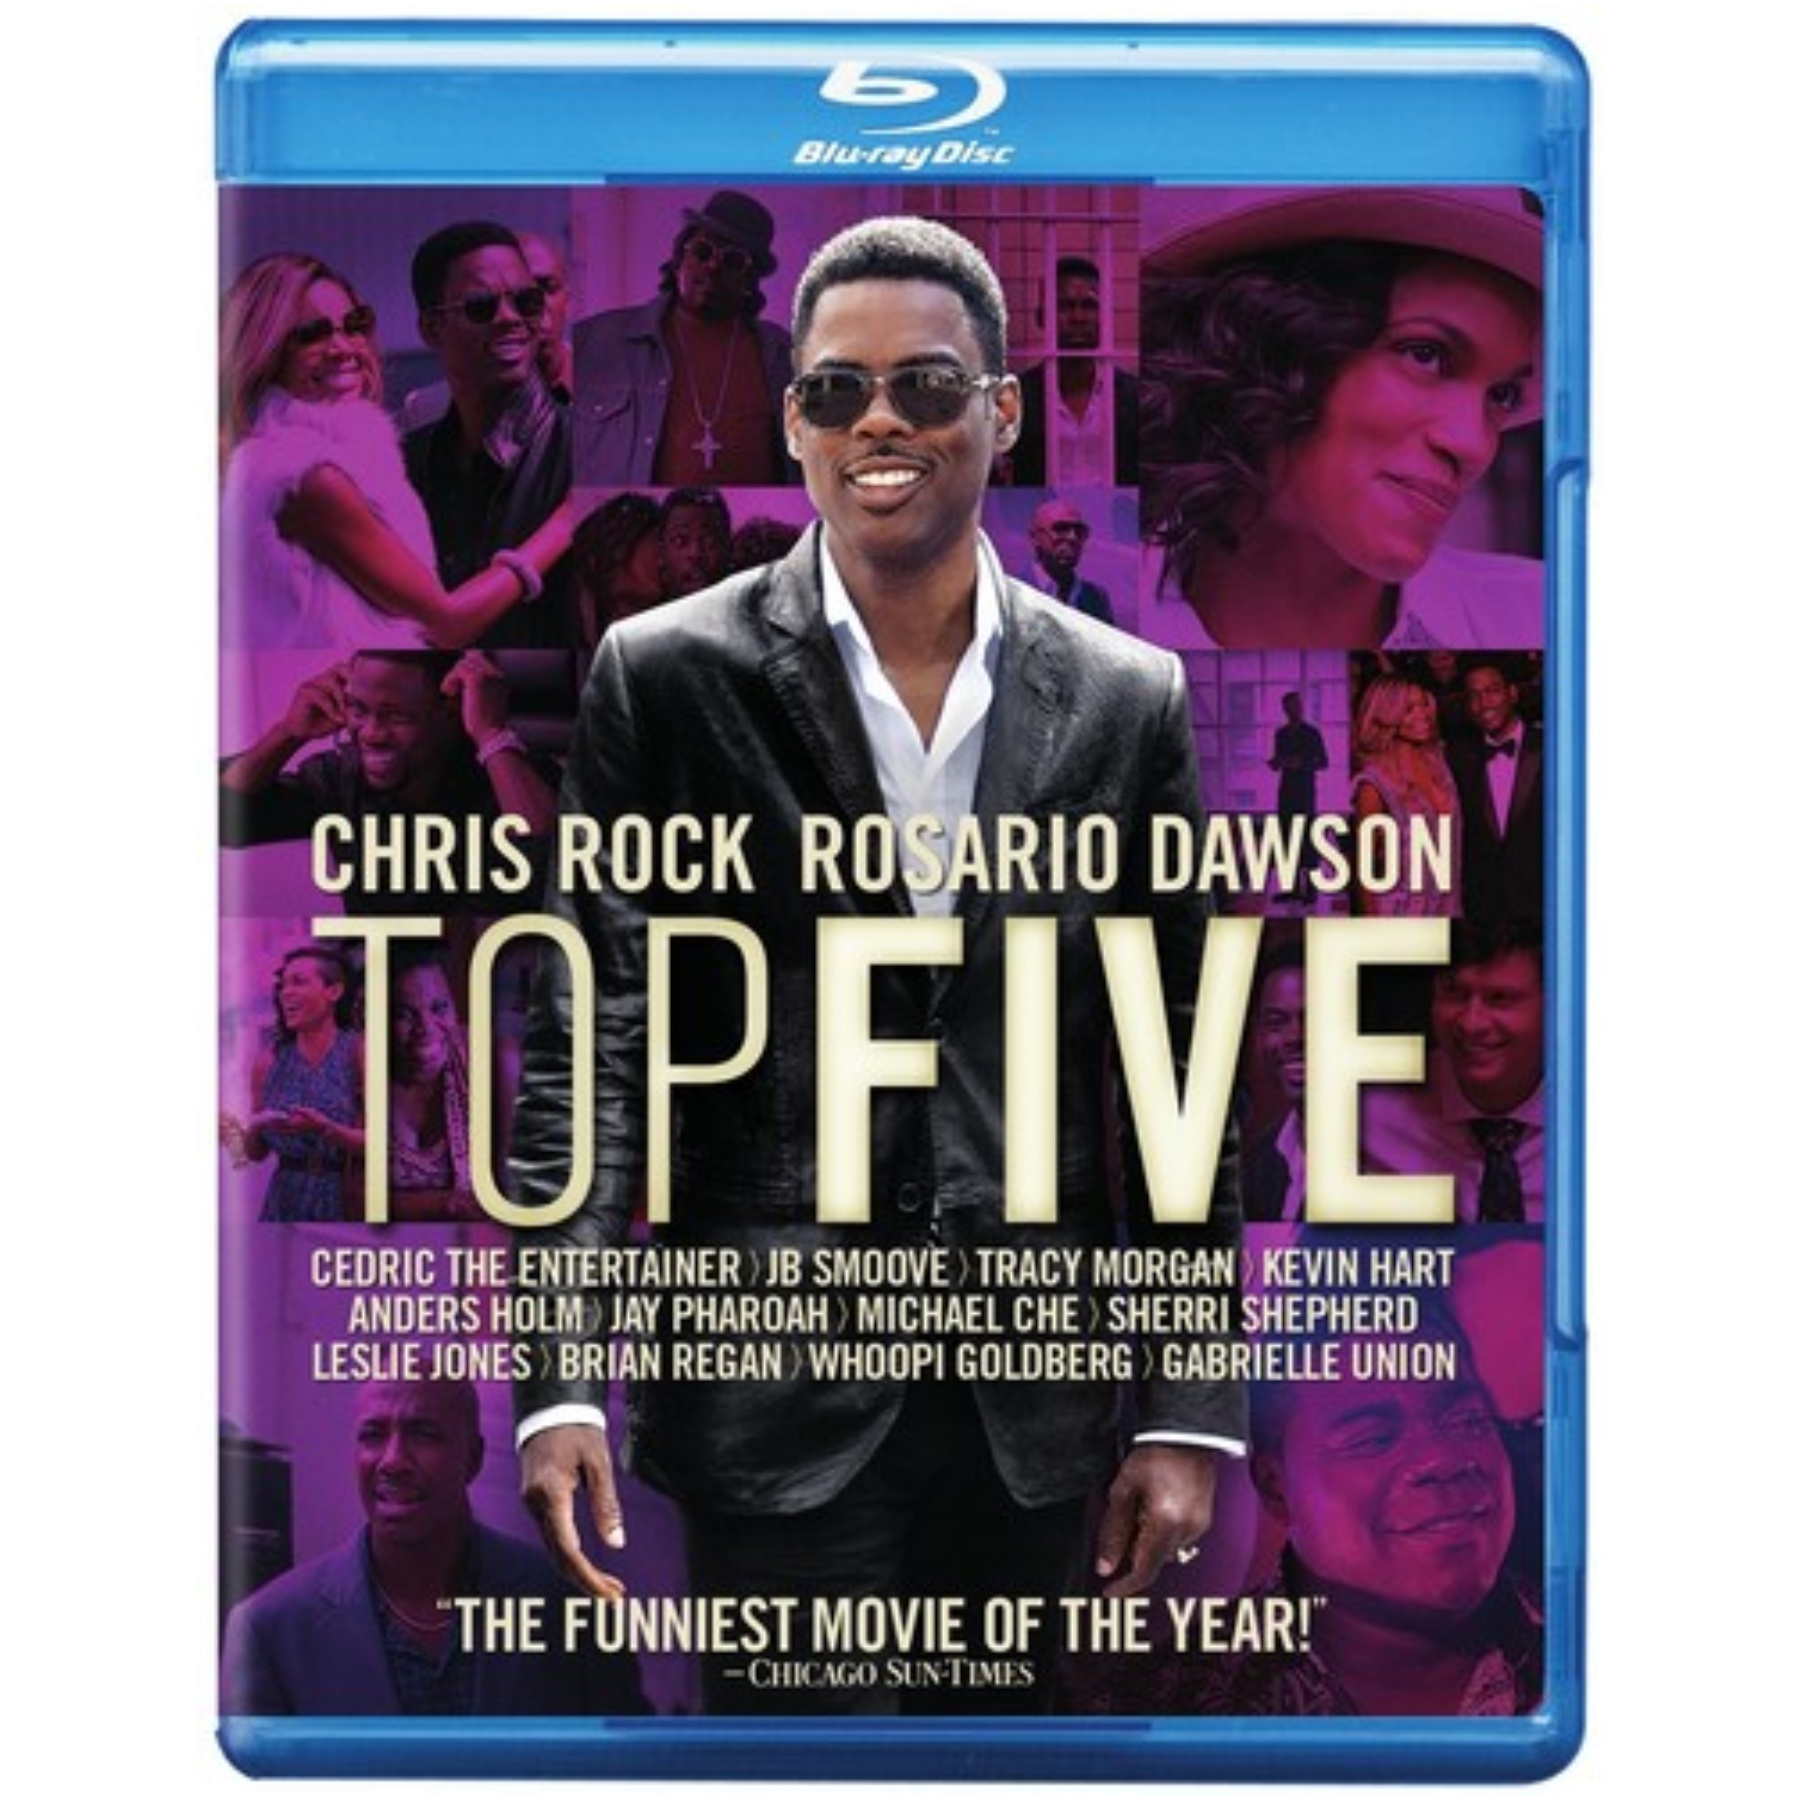 Top Five Blu-Ray 88392948660